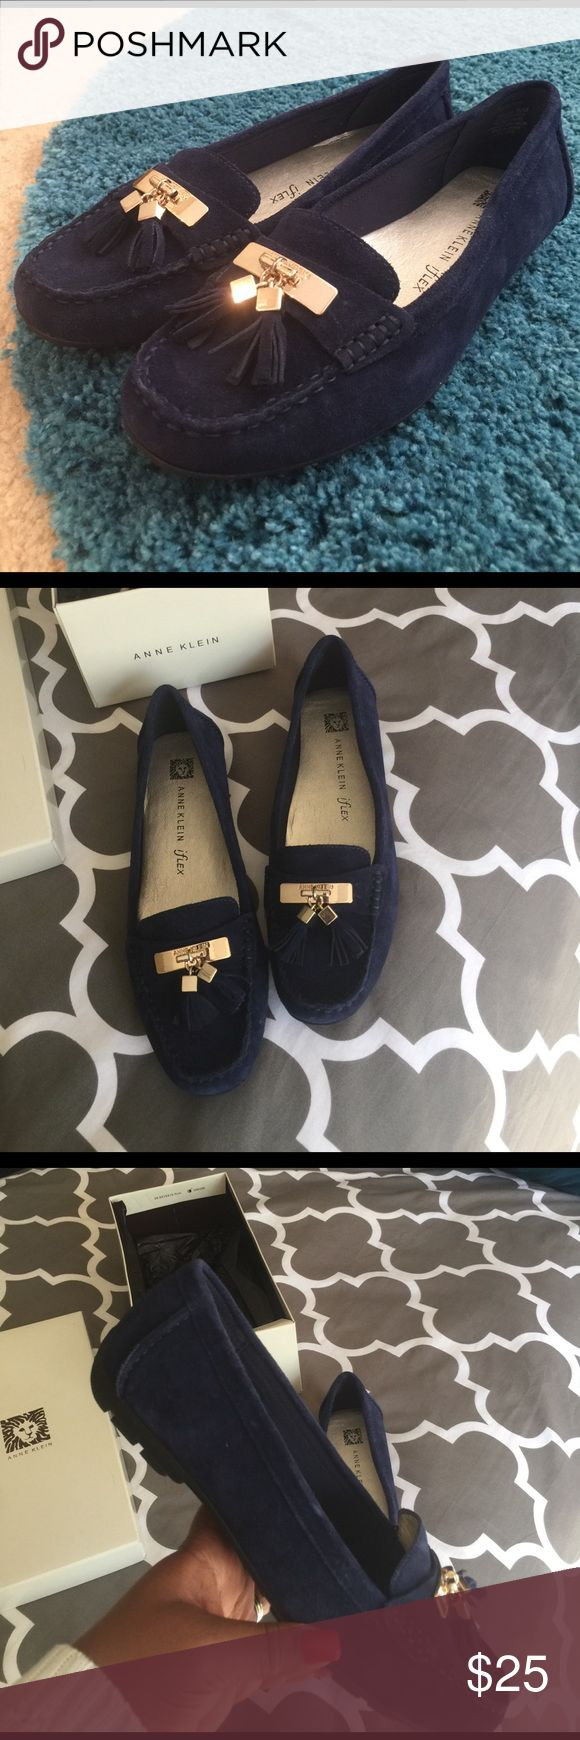 Anne Klein Navy blue dress shoe. I love the color, these shoes pair great with white pants or Khakis and a dress shirt or can be worn for a casual look. Anne Klein Shoes Flats & Loafers